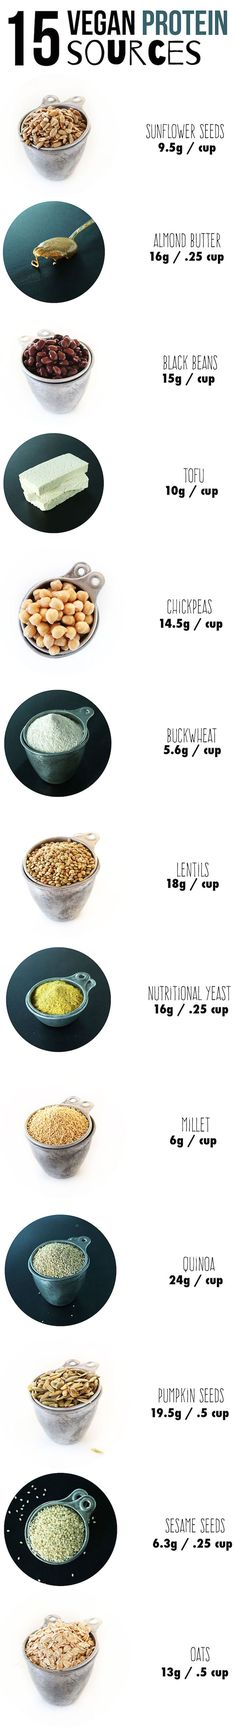 Get your protein! 15 HEALTHY Vegan Protein Sources with grams / serving